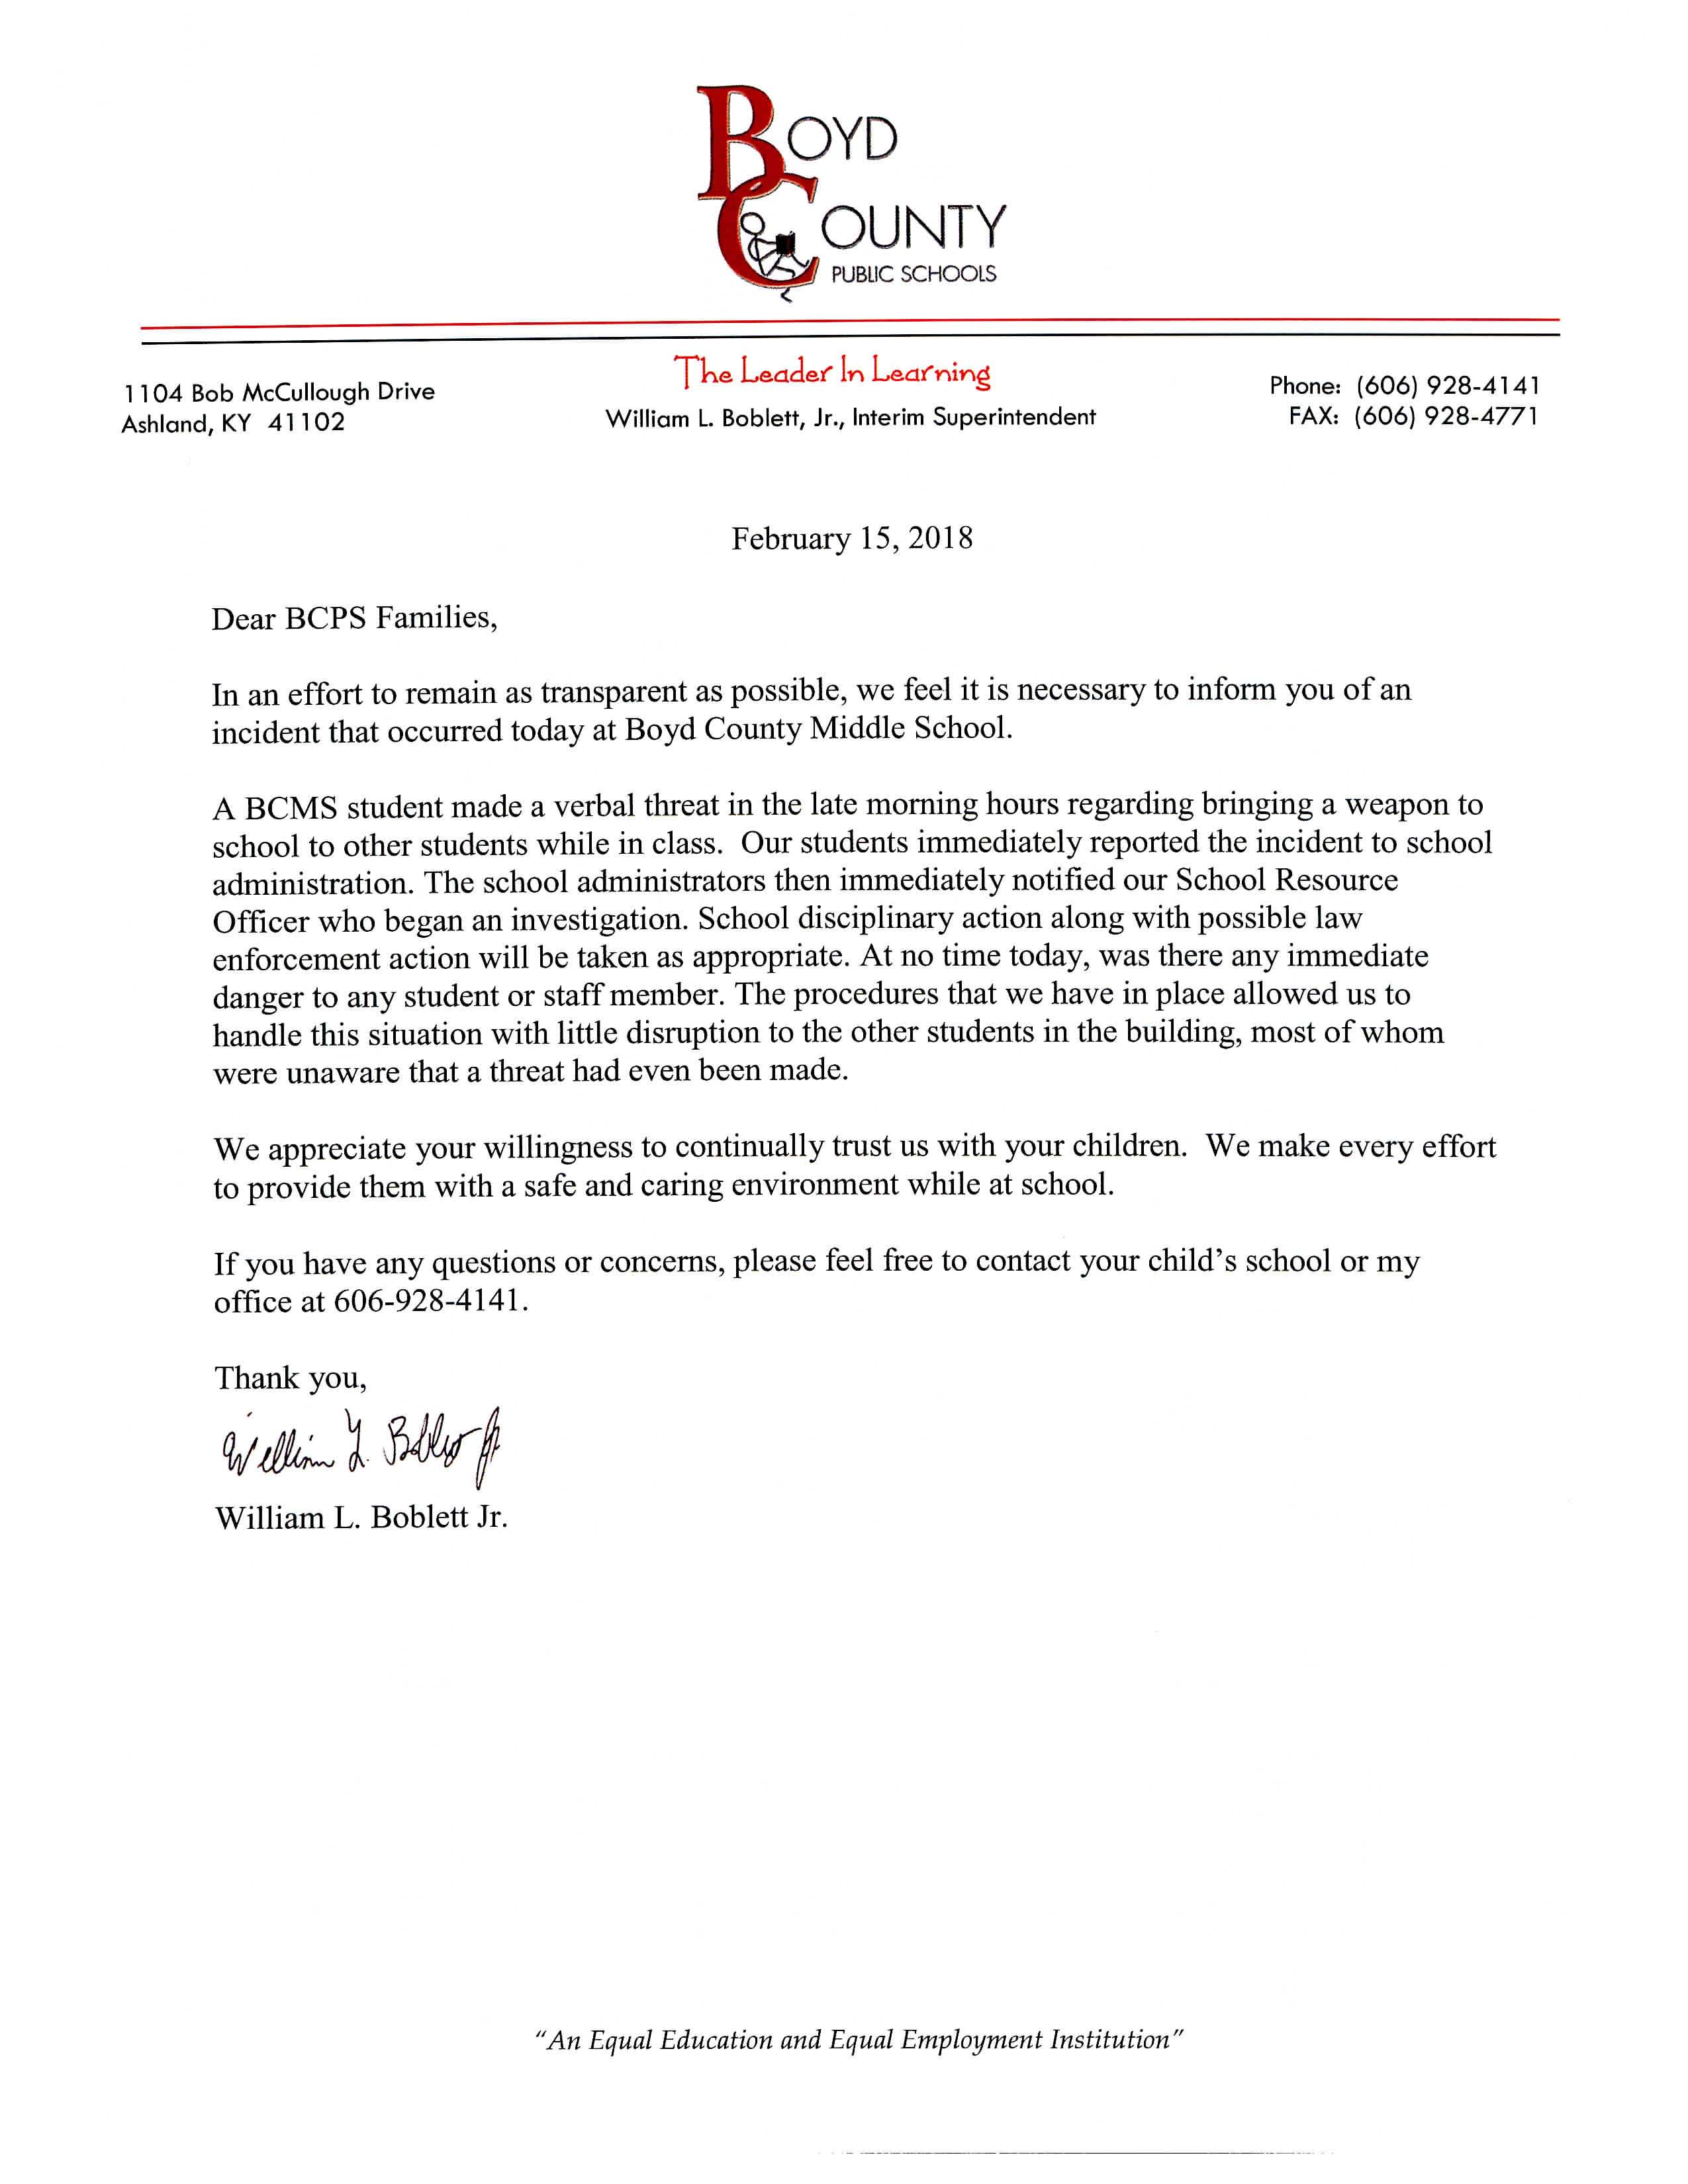 Letter to parents regarding a threat to bring a firearm to school.